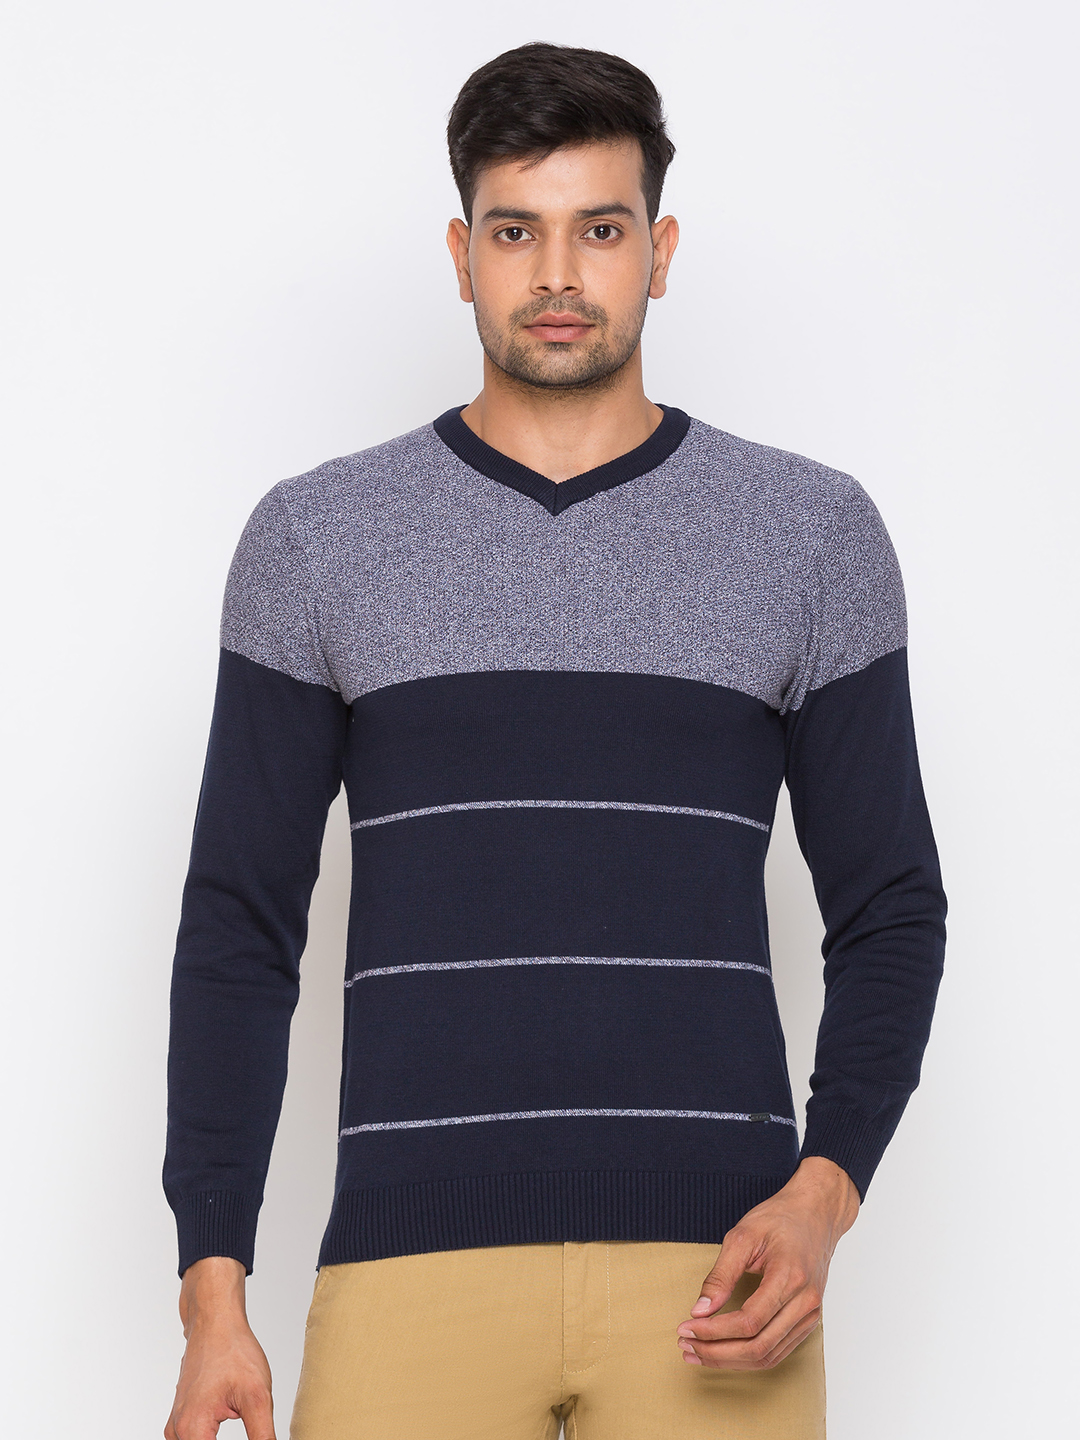 globus   Globus Navy Blue Striped Pullover Sweater